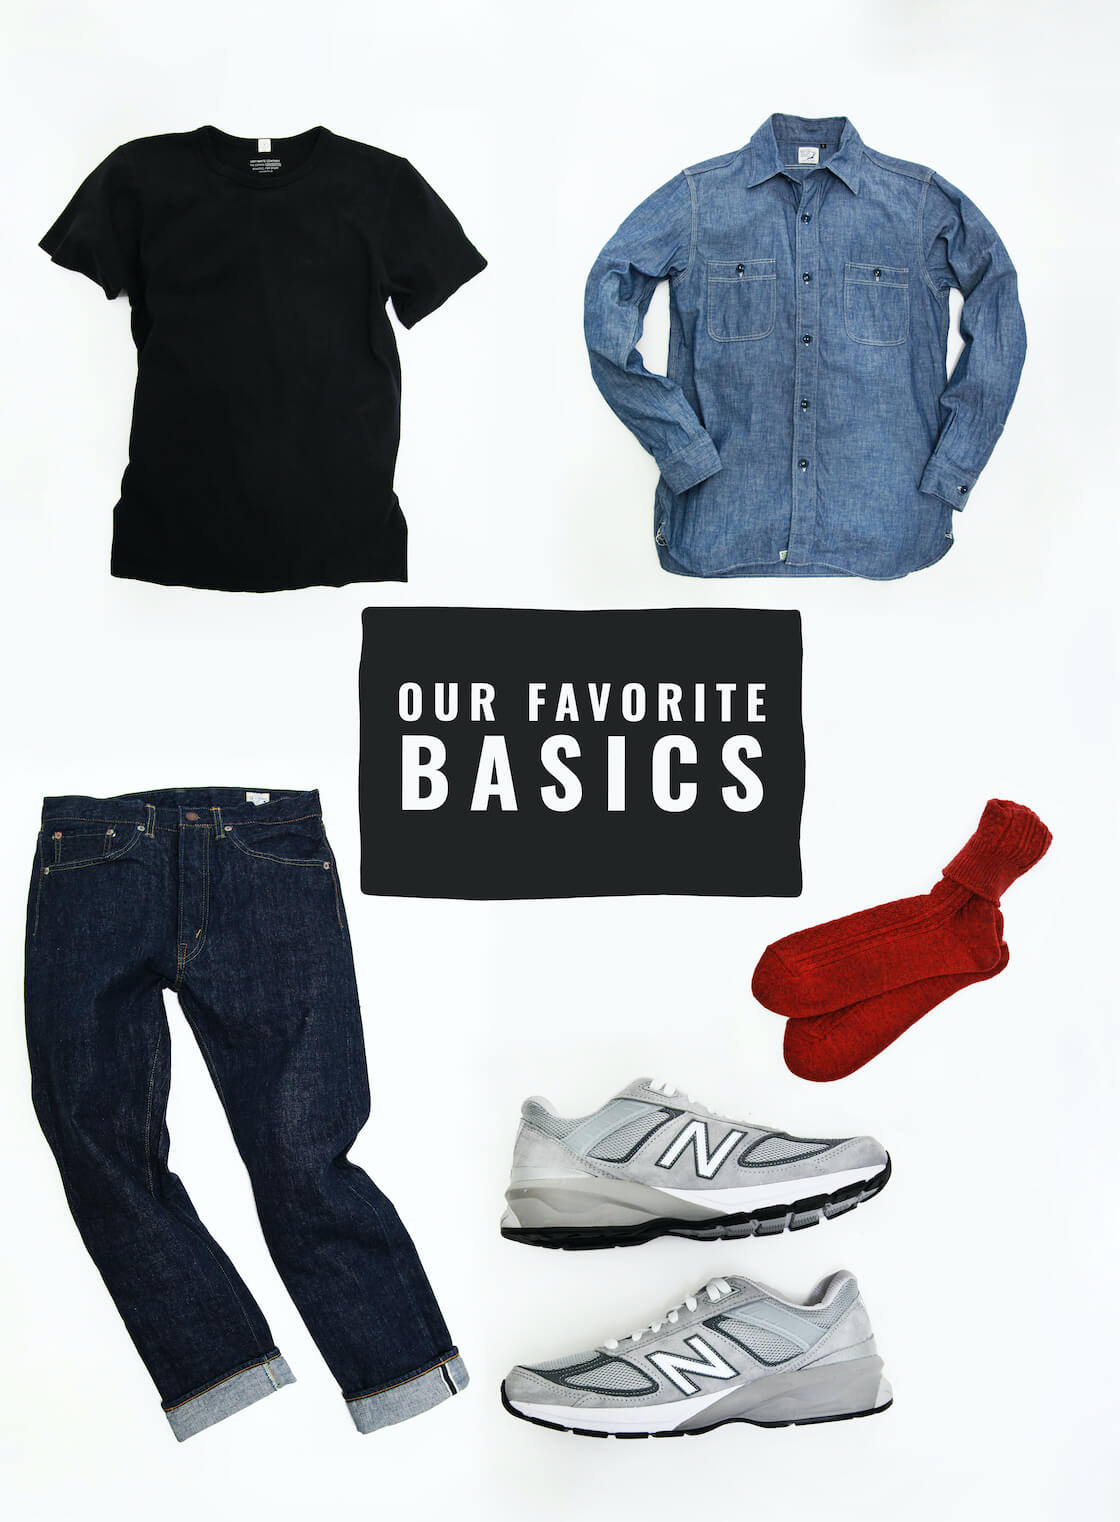 Our Favorite Basics Featuring orSlow chambray work shirt, orslow 107 ivy denim, lady white co t-shirts, anonymous ism socks, and new balance 990s